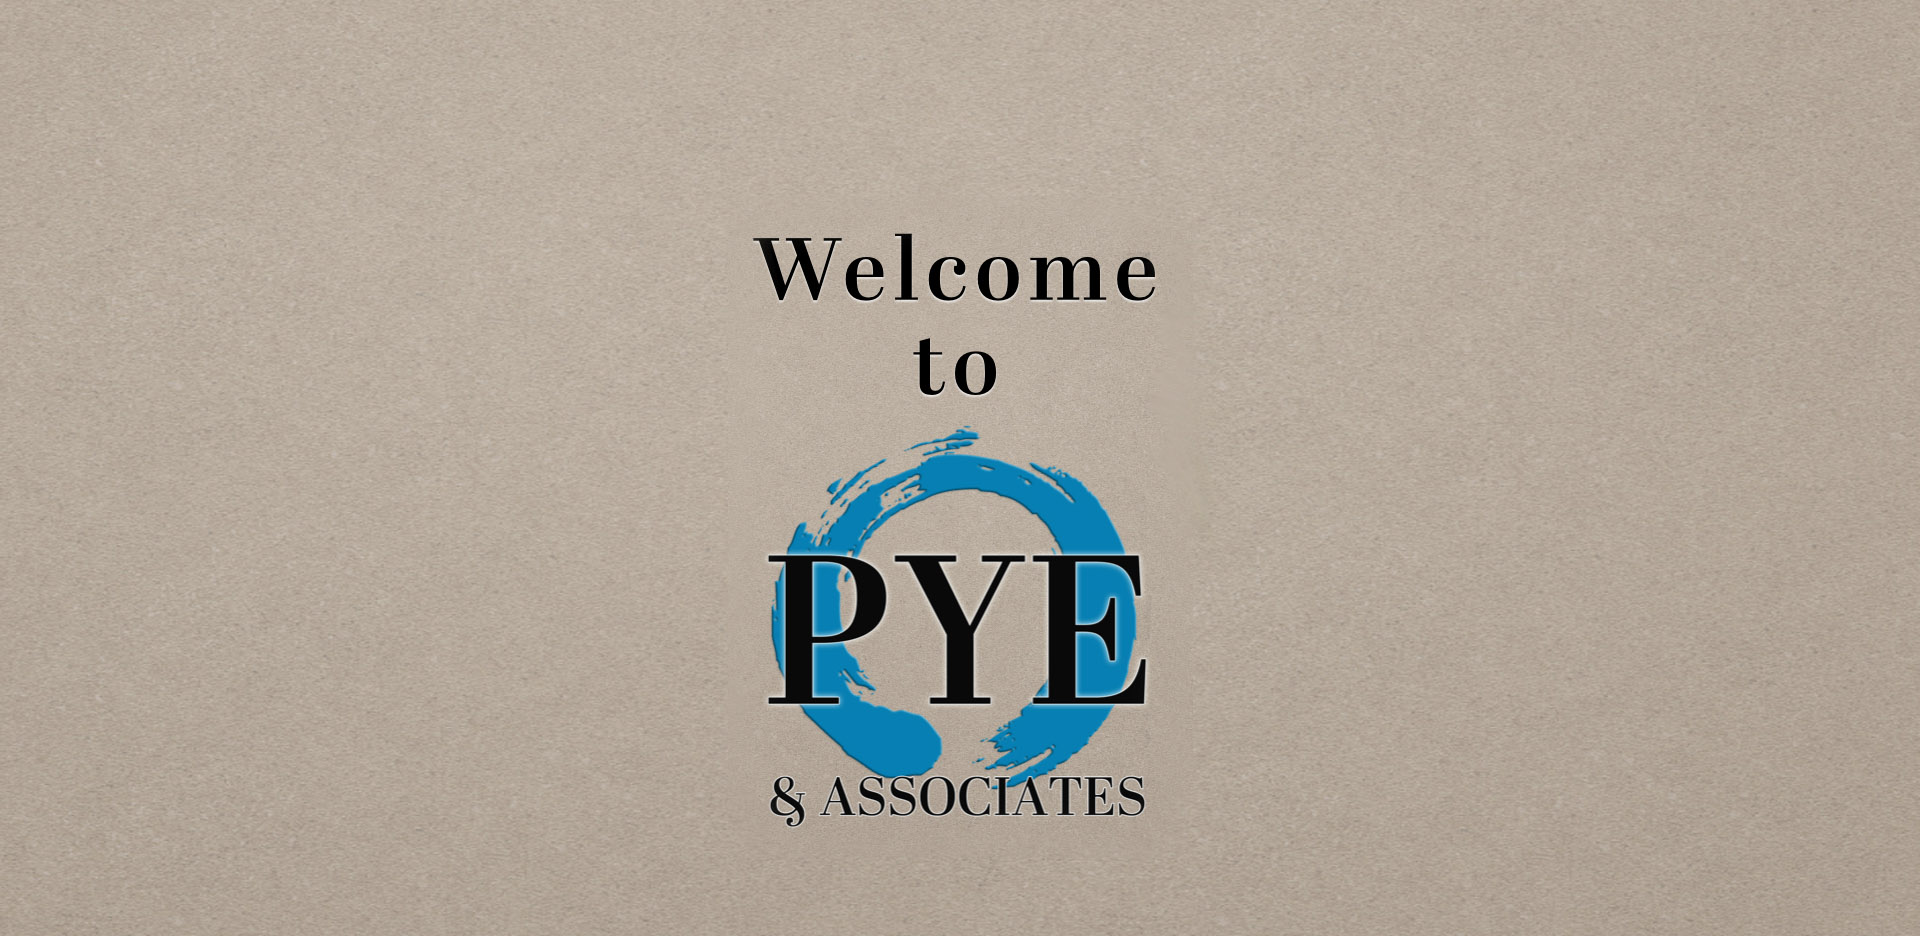 Welcome to Pye & Associates